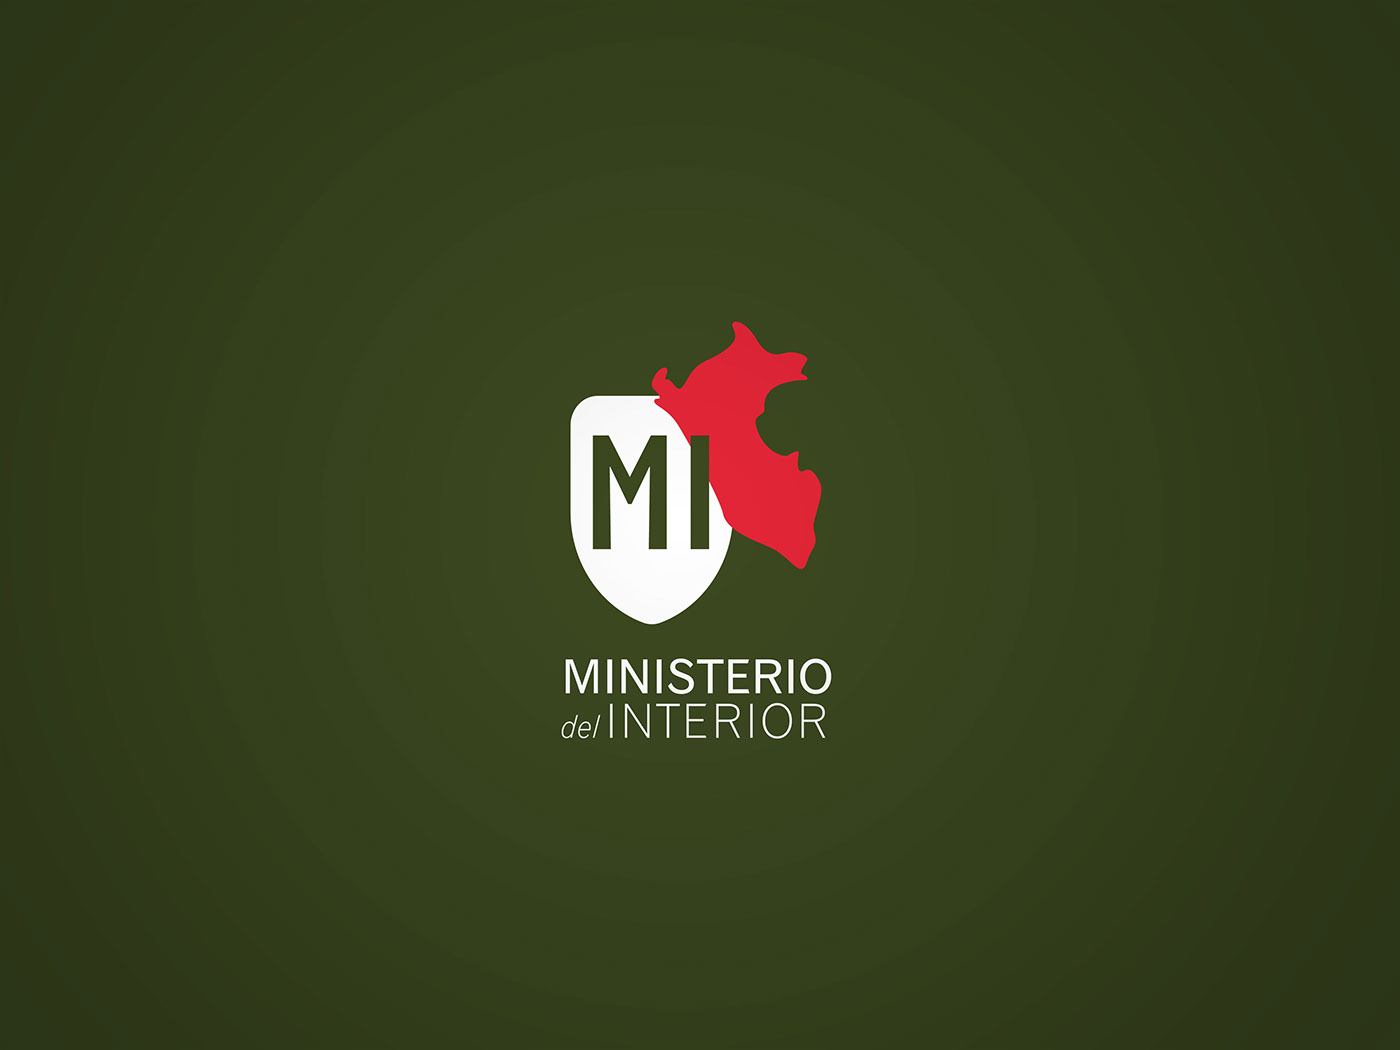 Ministerio del interior rebranding on behance for Mir ministerio interior